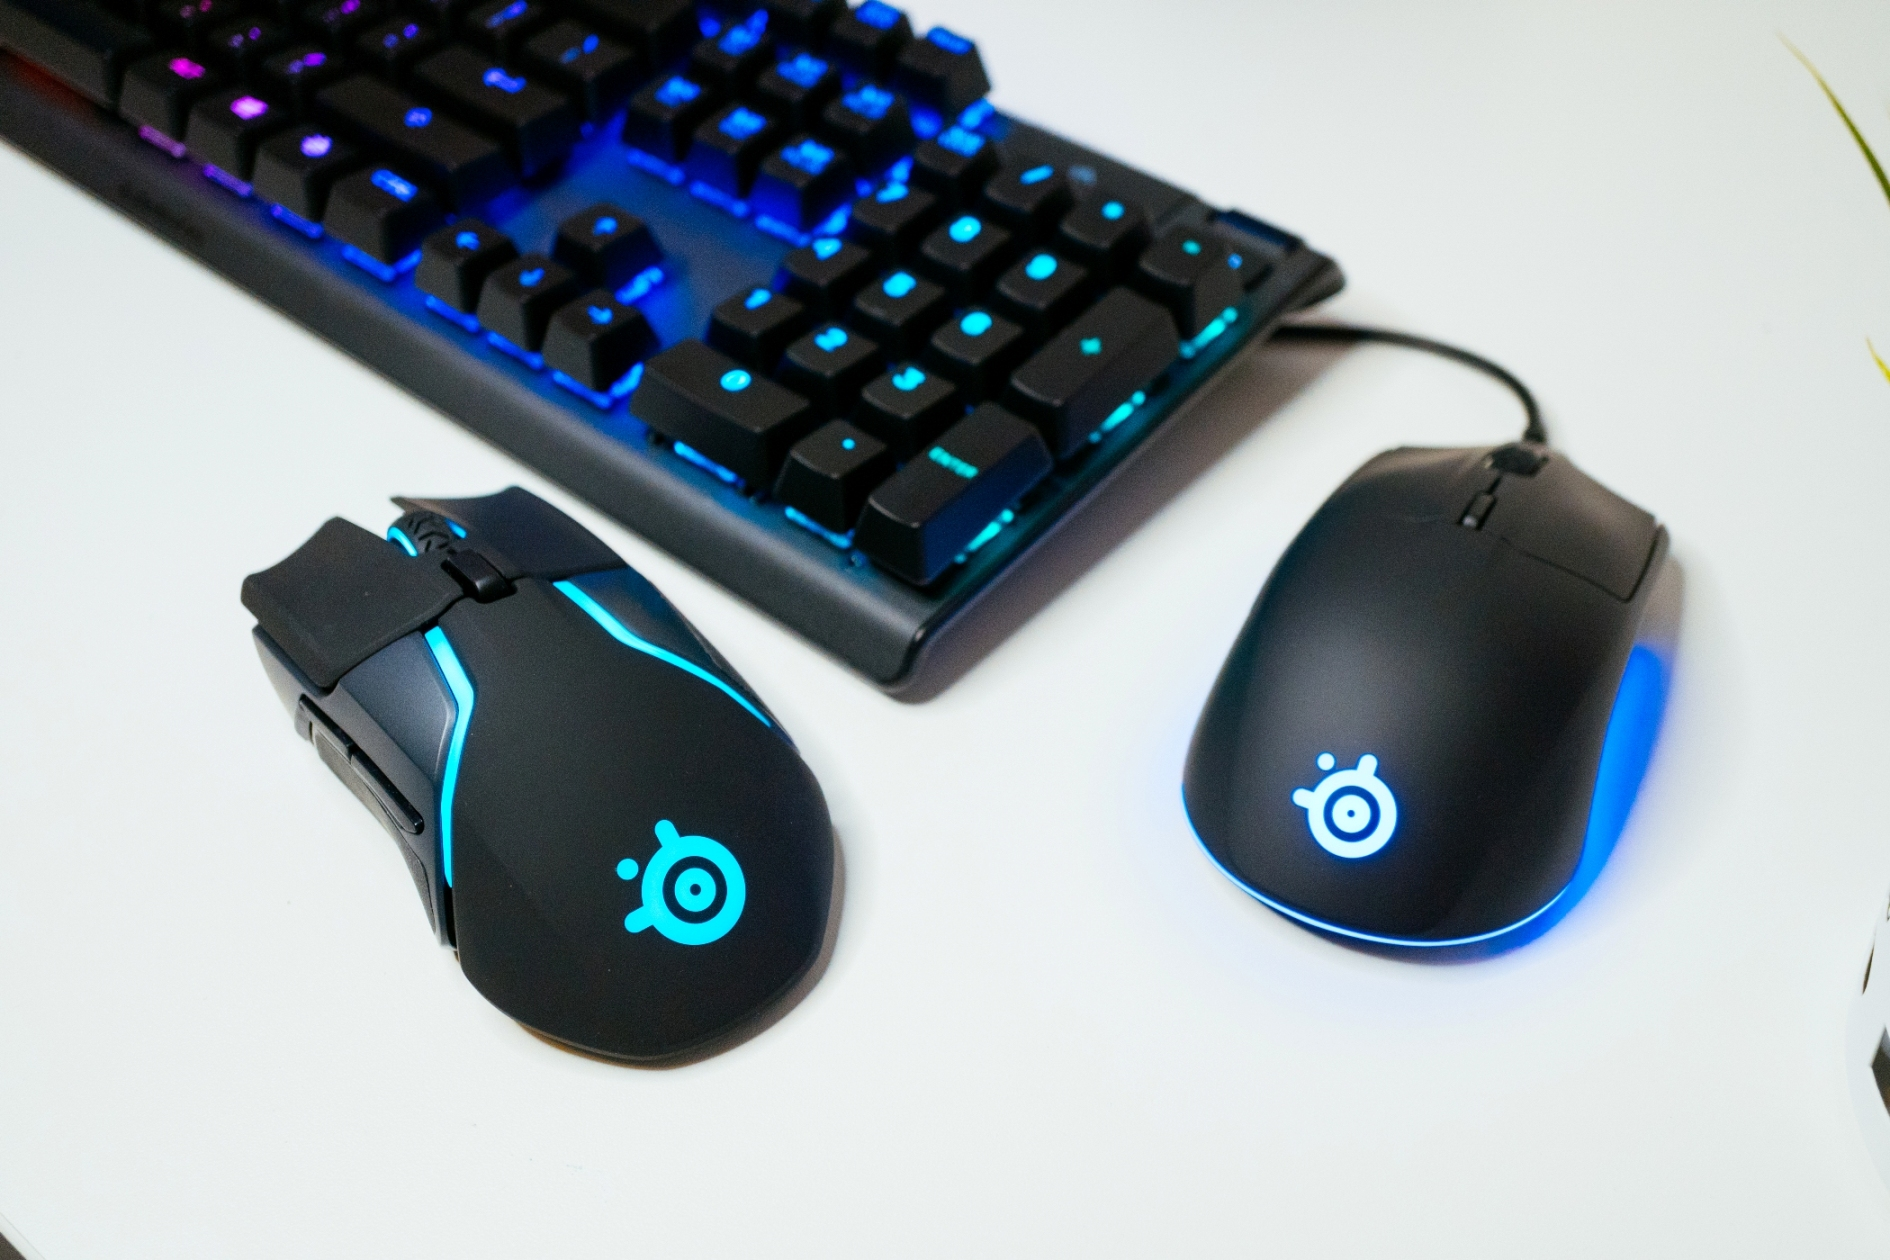 SteelSeries Rival 3 and Rival 650